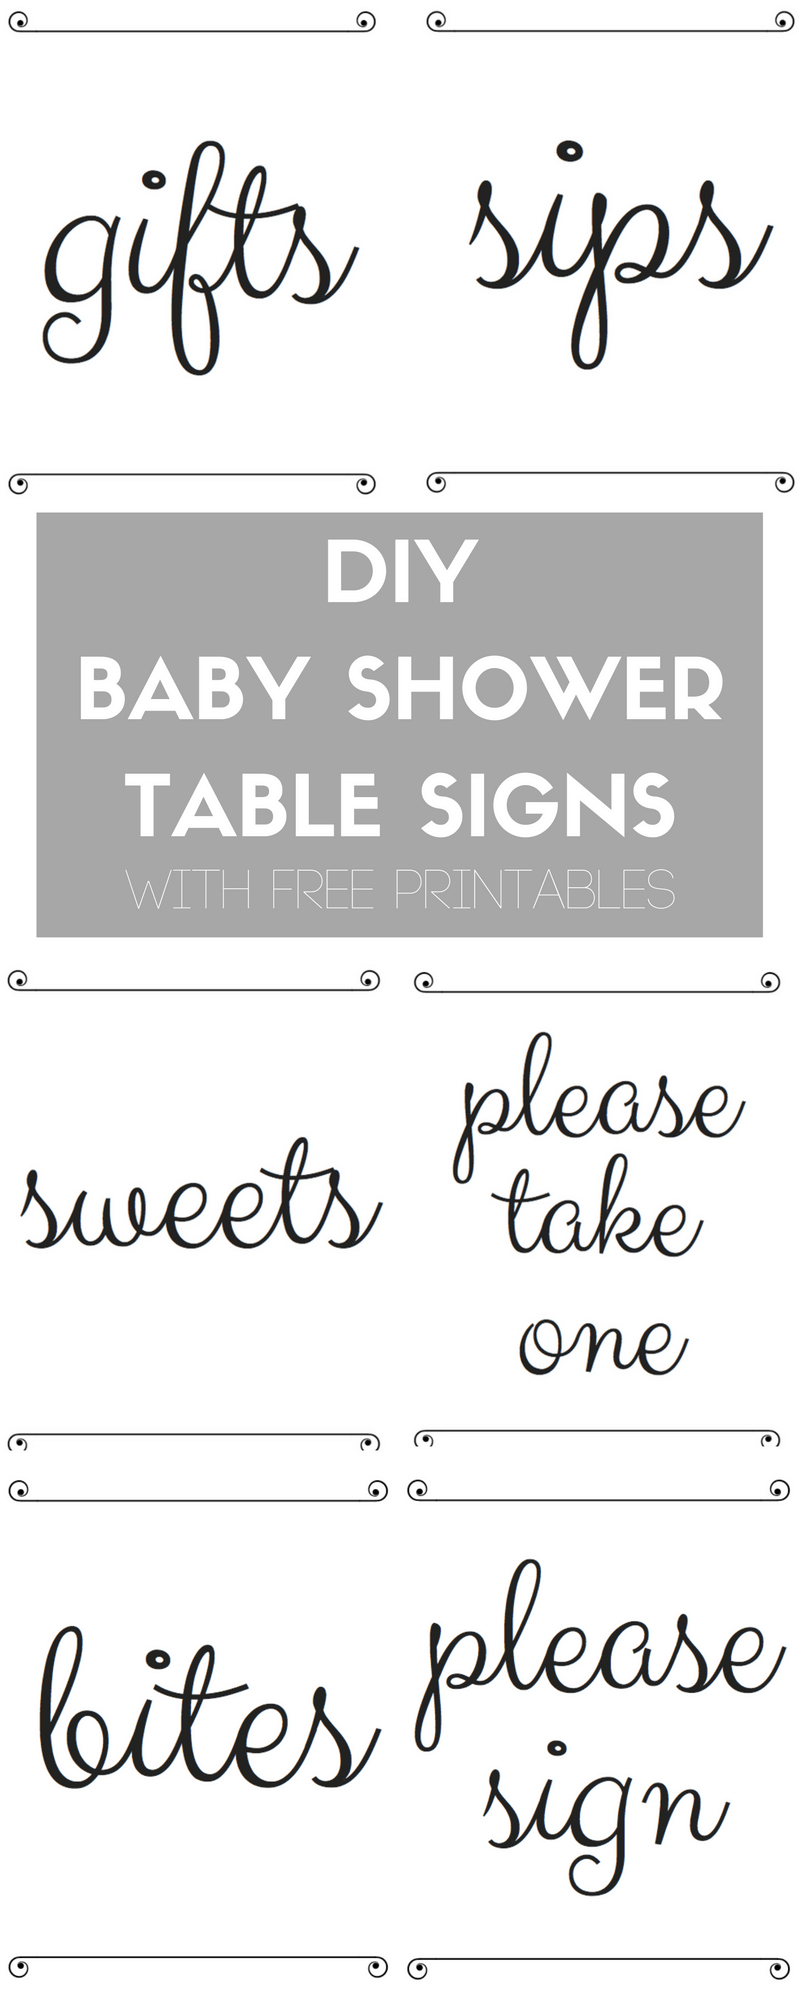 Diy Baby Shower Table Signs With Free Printables   Best Of The Blog - Free Printable Baby Shower Table Signs